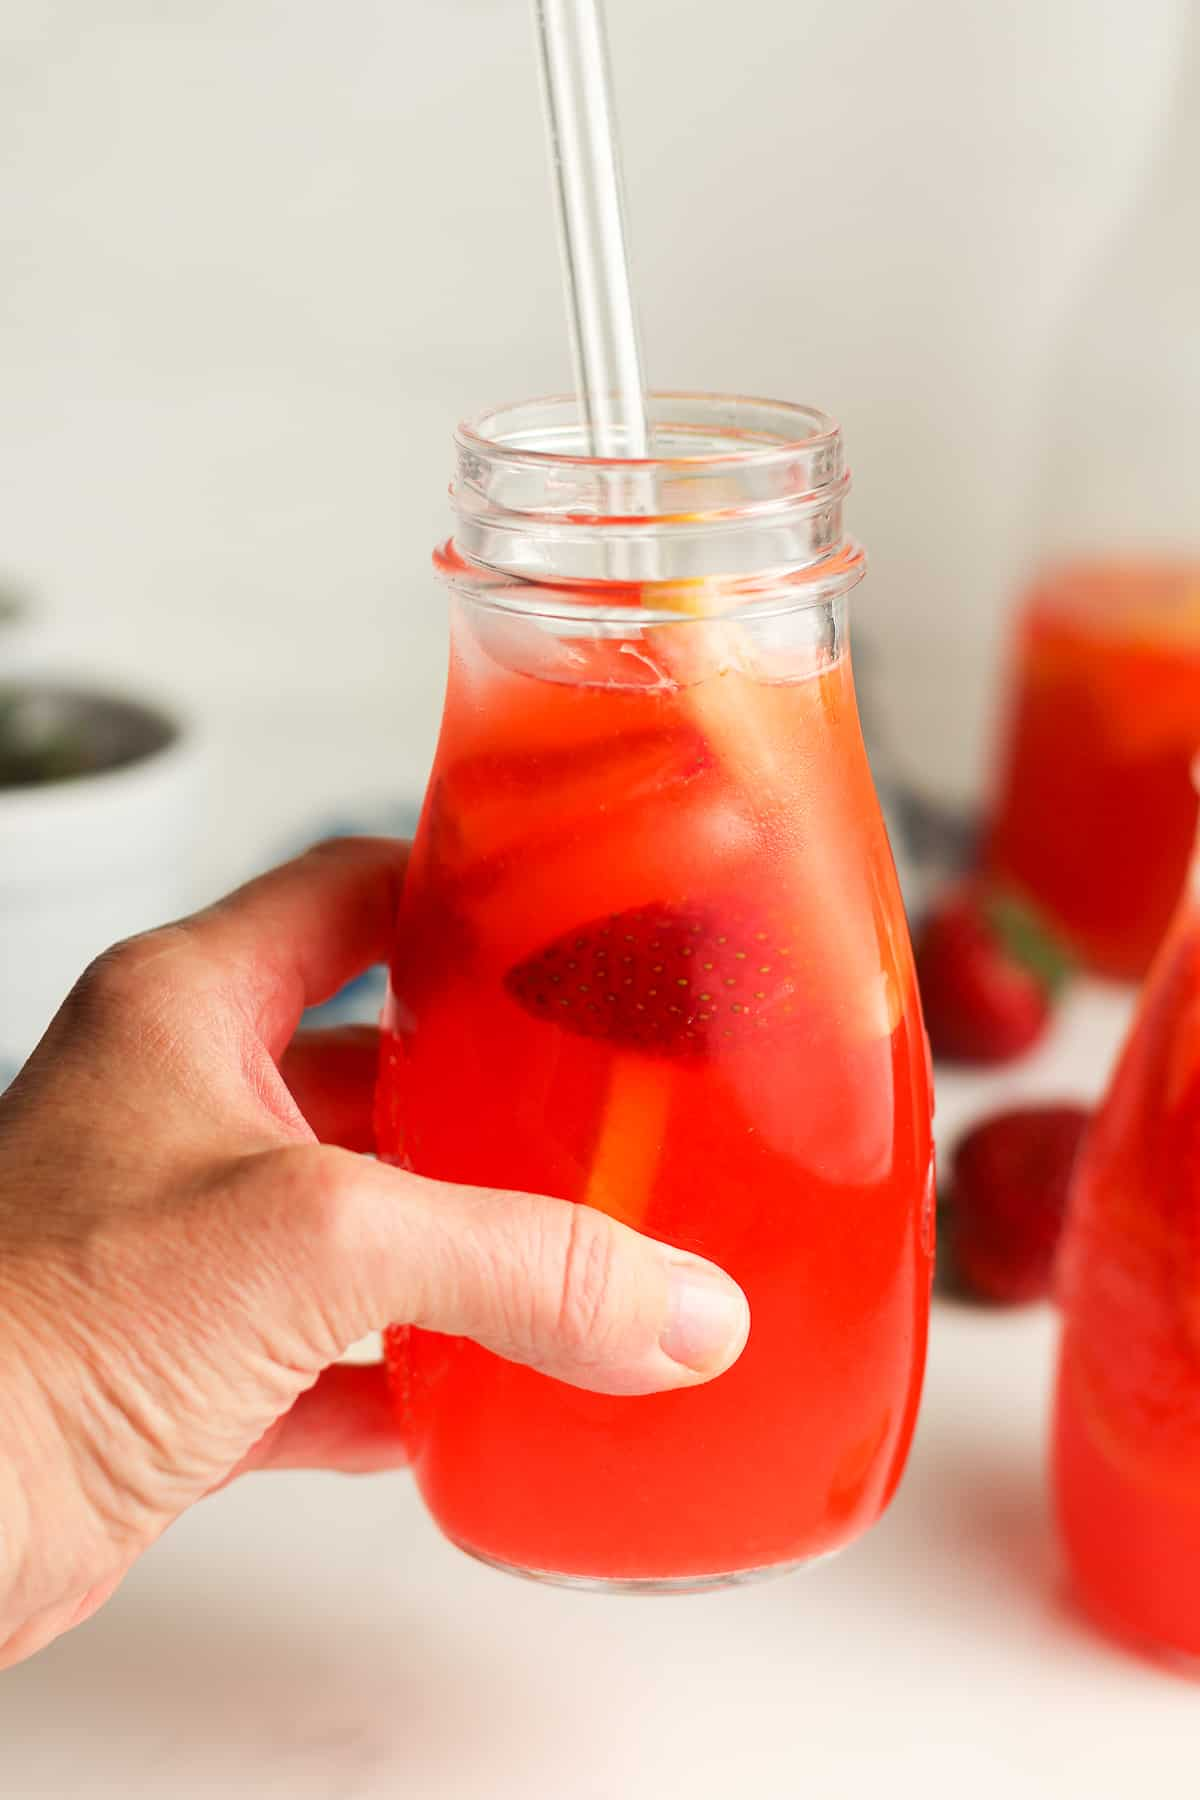 A hand holding up a strawberry lemonade with vodka.